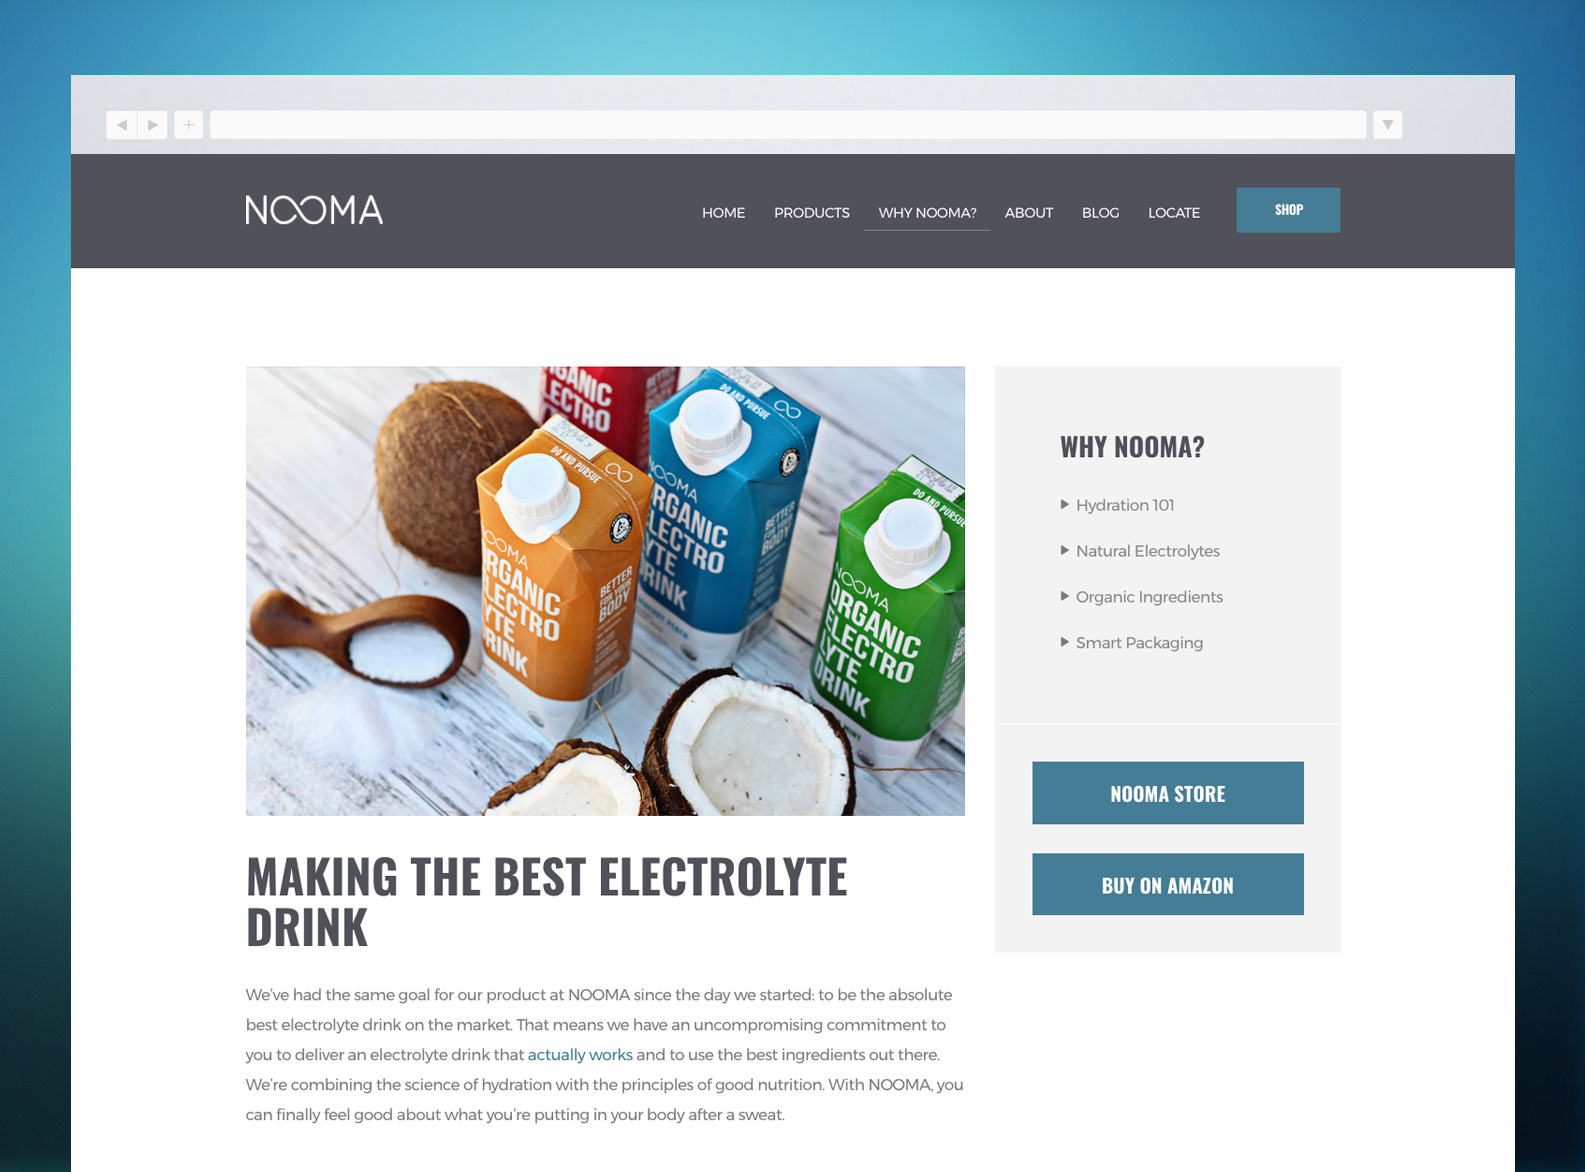 NOOMA Website About